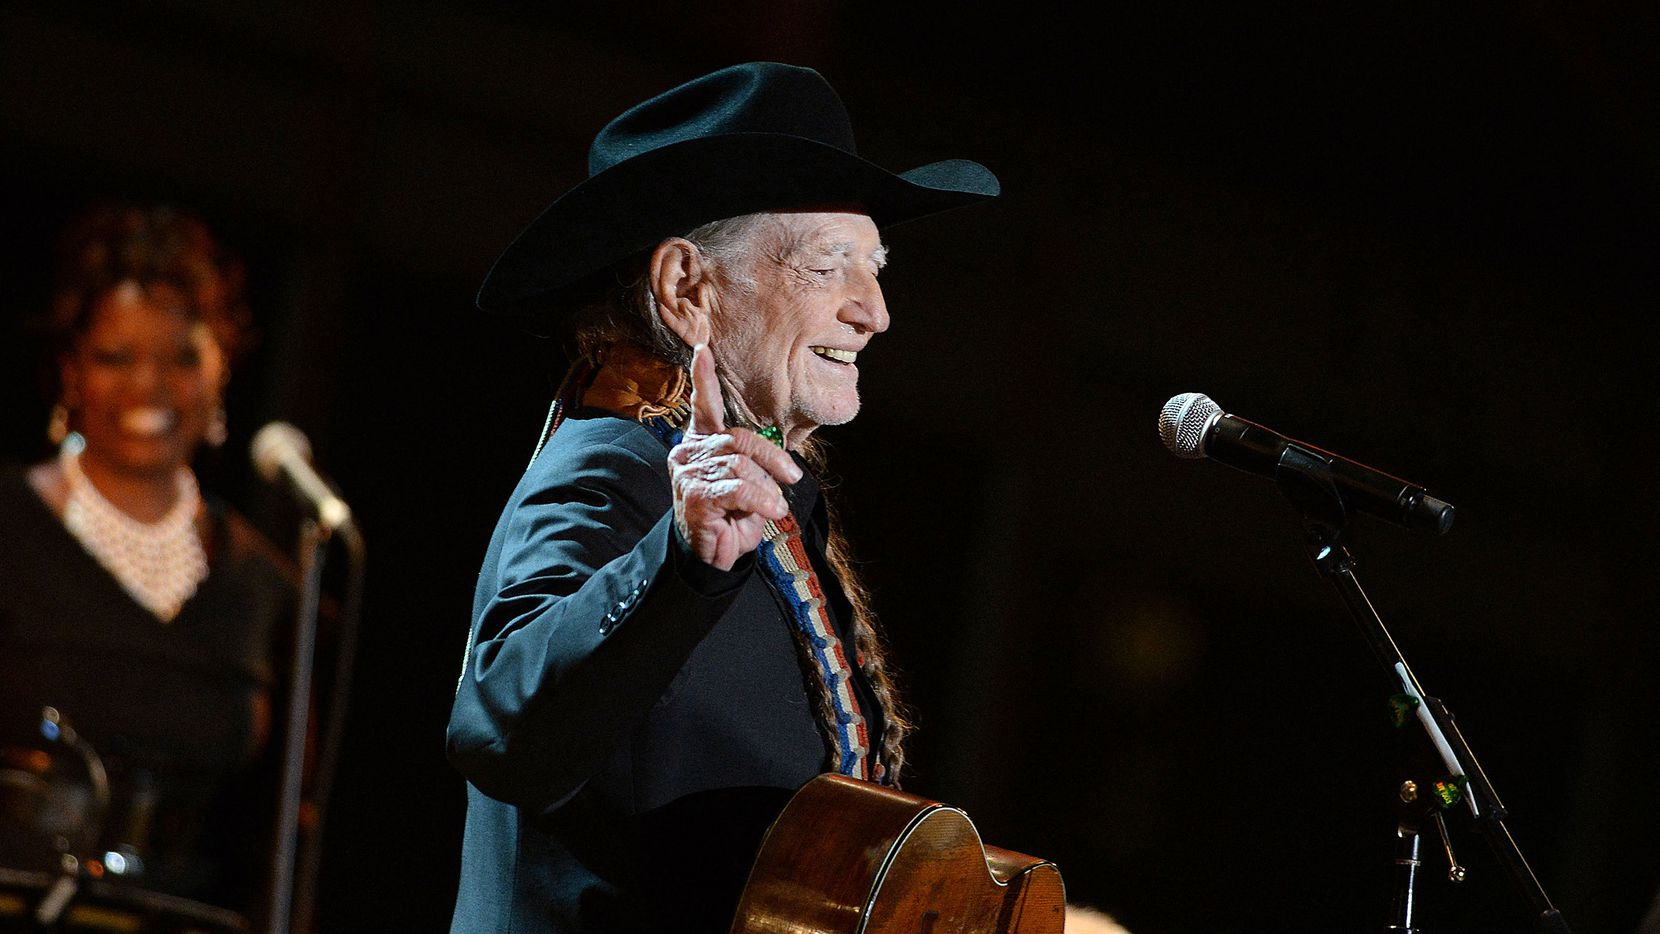 Singer Willie Nelson performs at A Salute to the Troops: In Performance at the White House concert on the South Lawn on Nov. 6, 2014 in Washington, D.C.